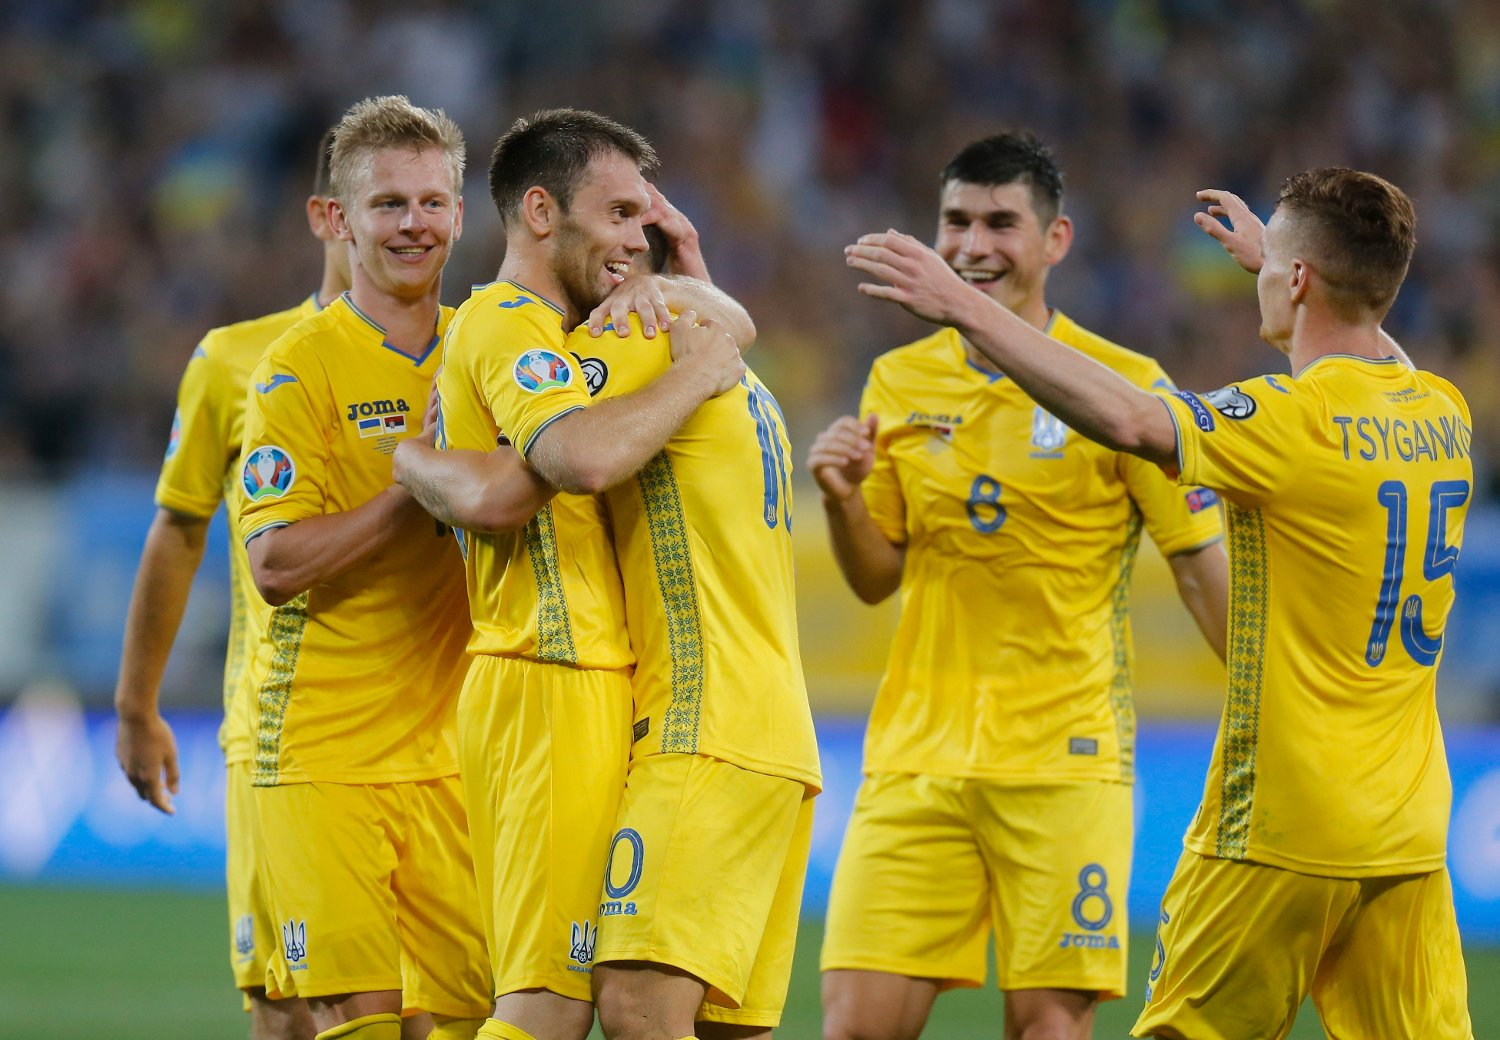 Ukraine's players celebrate after scoring their side's third goal during the Euro 2020 group B qualifying soccer match between Ukraine and Serbia at the Arena Lviv stadium in Lviv, Ukraine, Friday, June. 7, 2019.